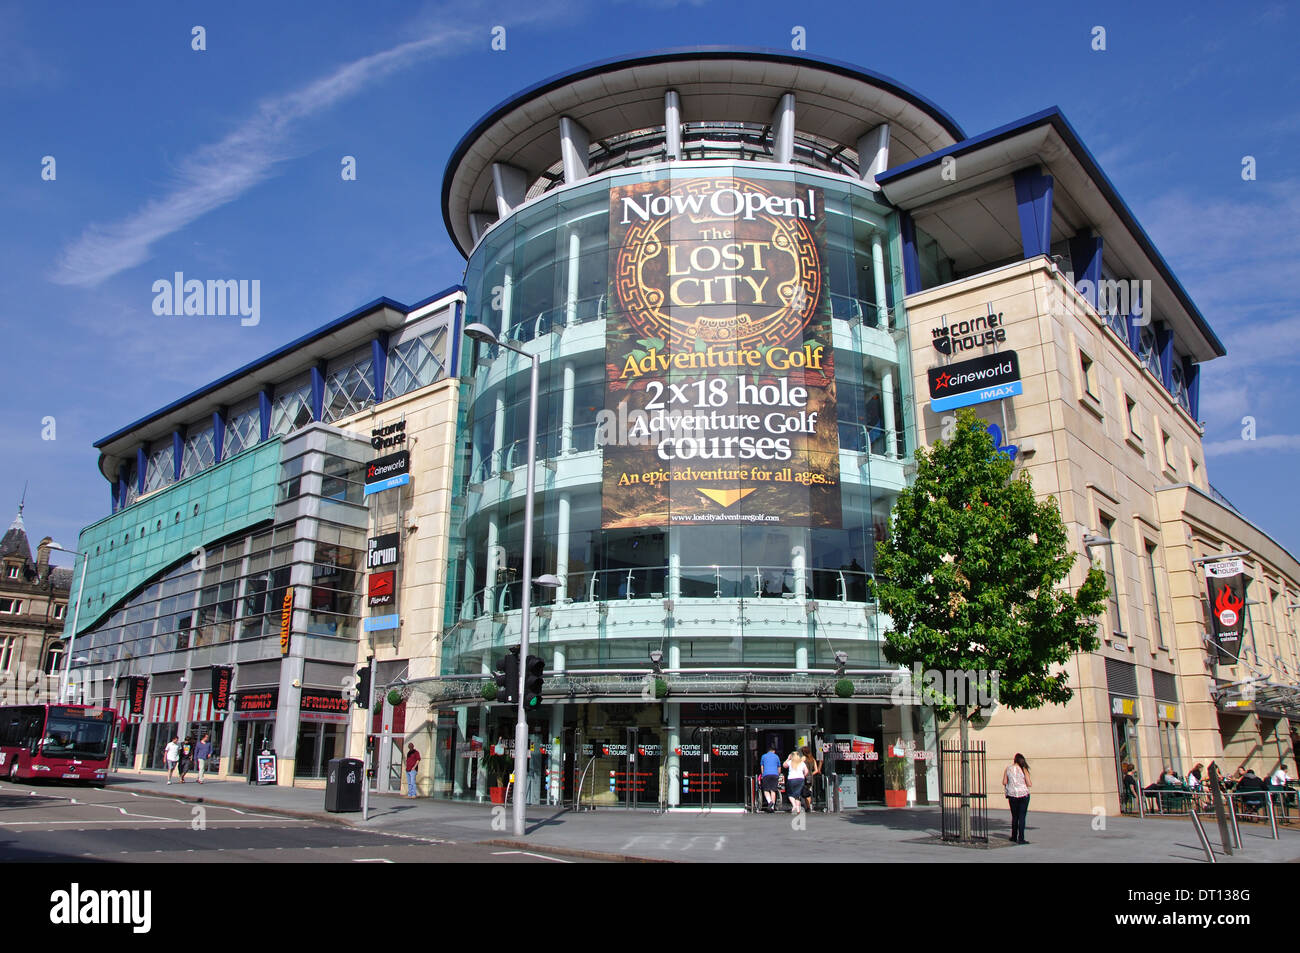 The Corner House, Burton Street, Nottingham, England, UK - Stock Image